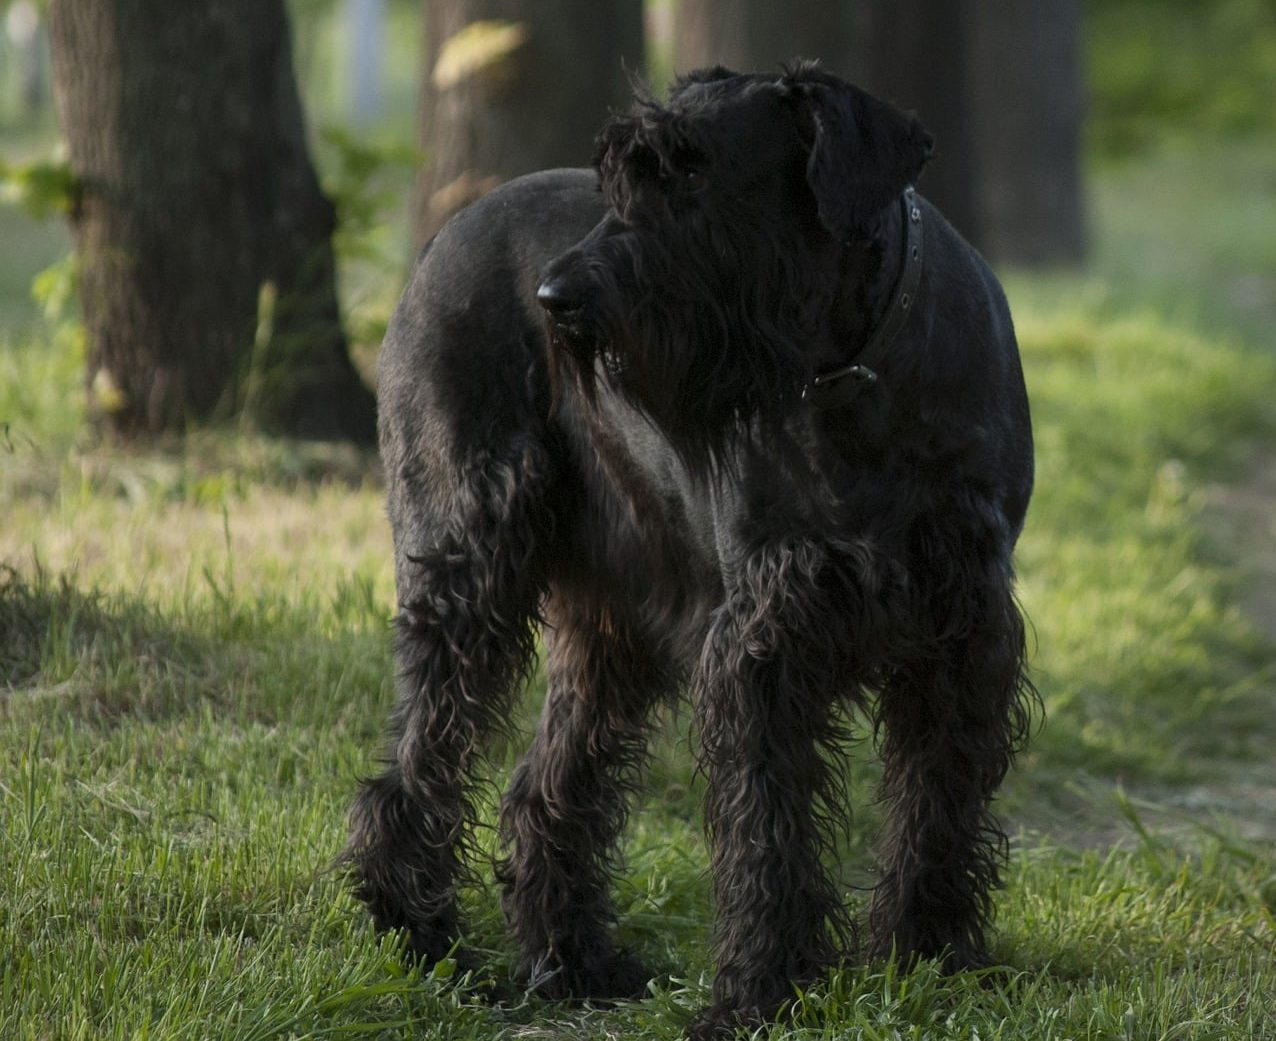 Giant Schanuzer breed info NewDoggy.com